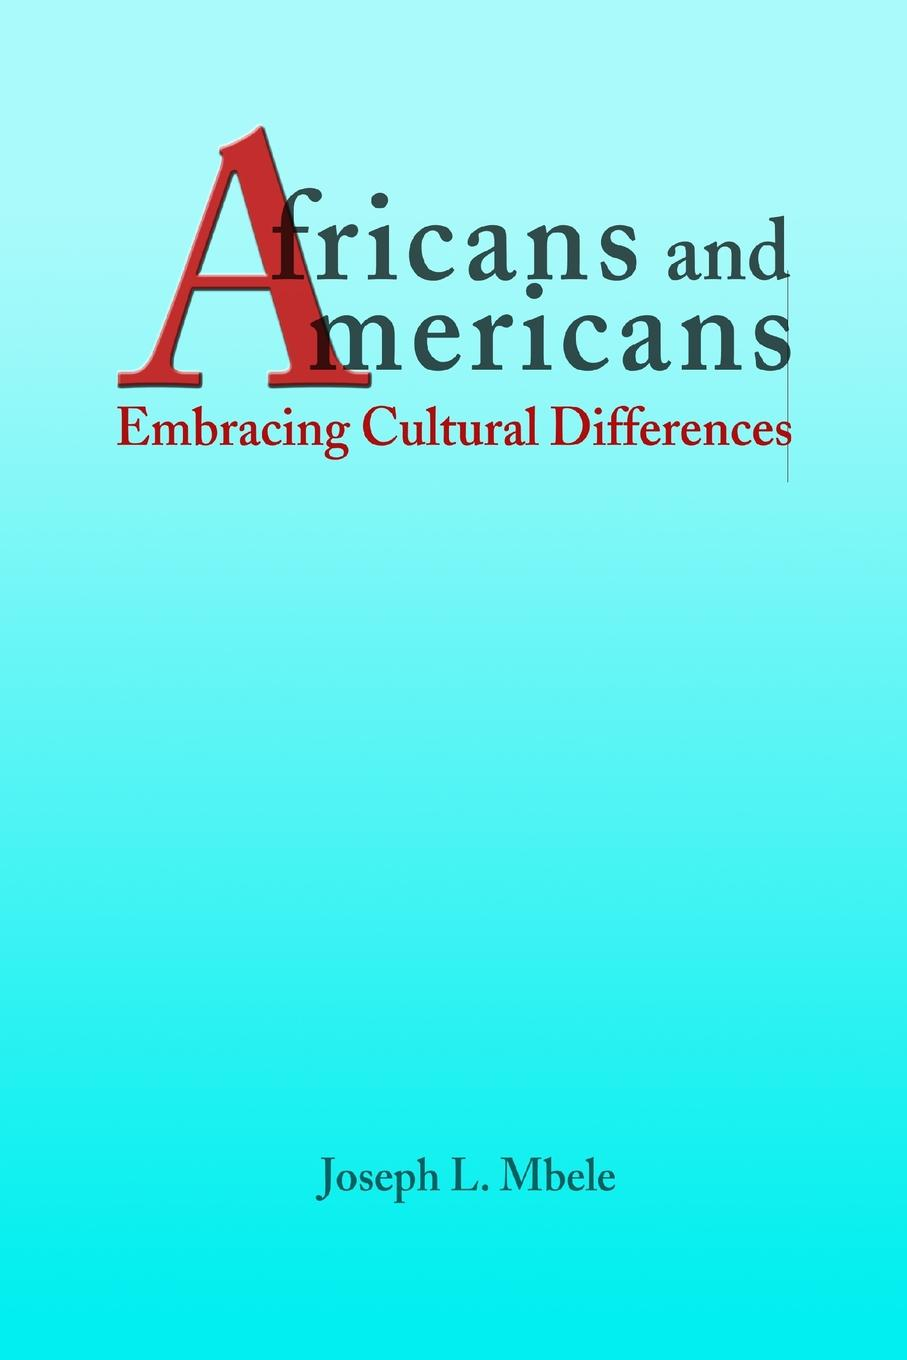 Joseph Mbele Africans and Americans. Embracing Cultural Differences between self and others